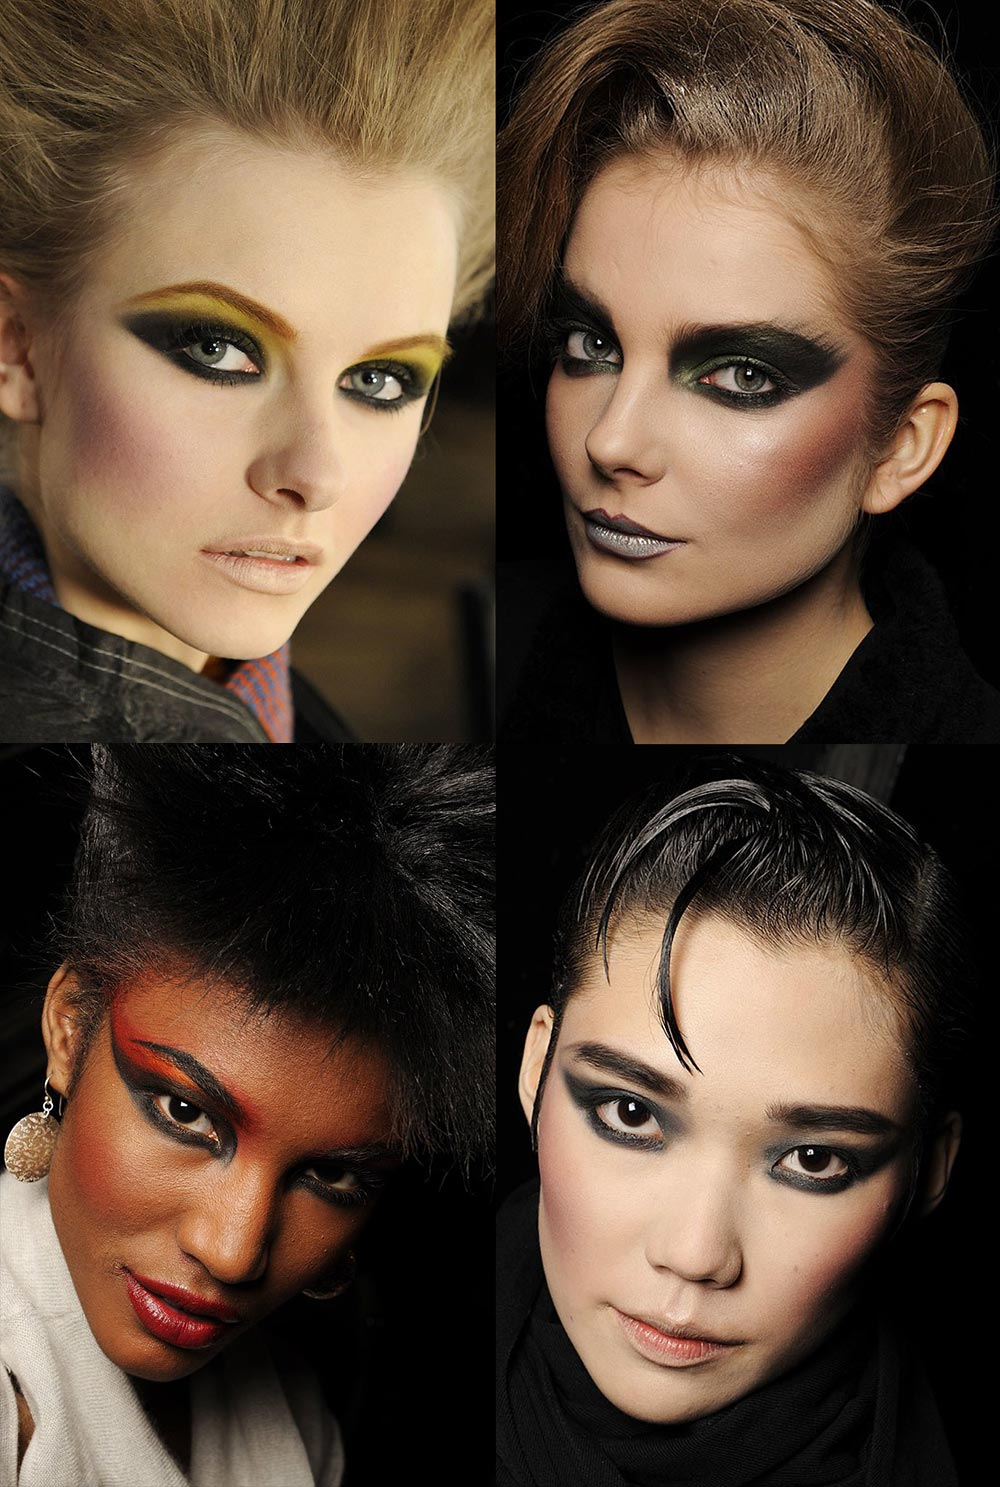 marc-jacobs-fall-2009-runway-makeup-by-nars.jpg